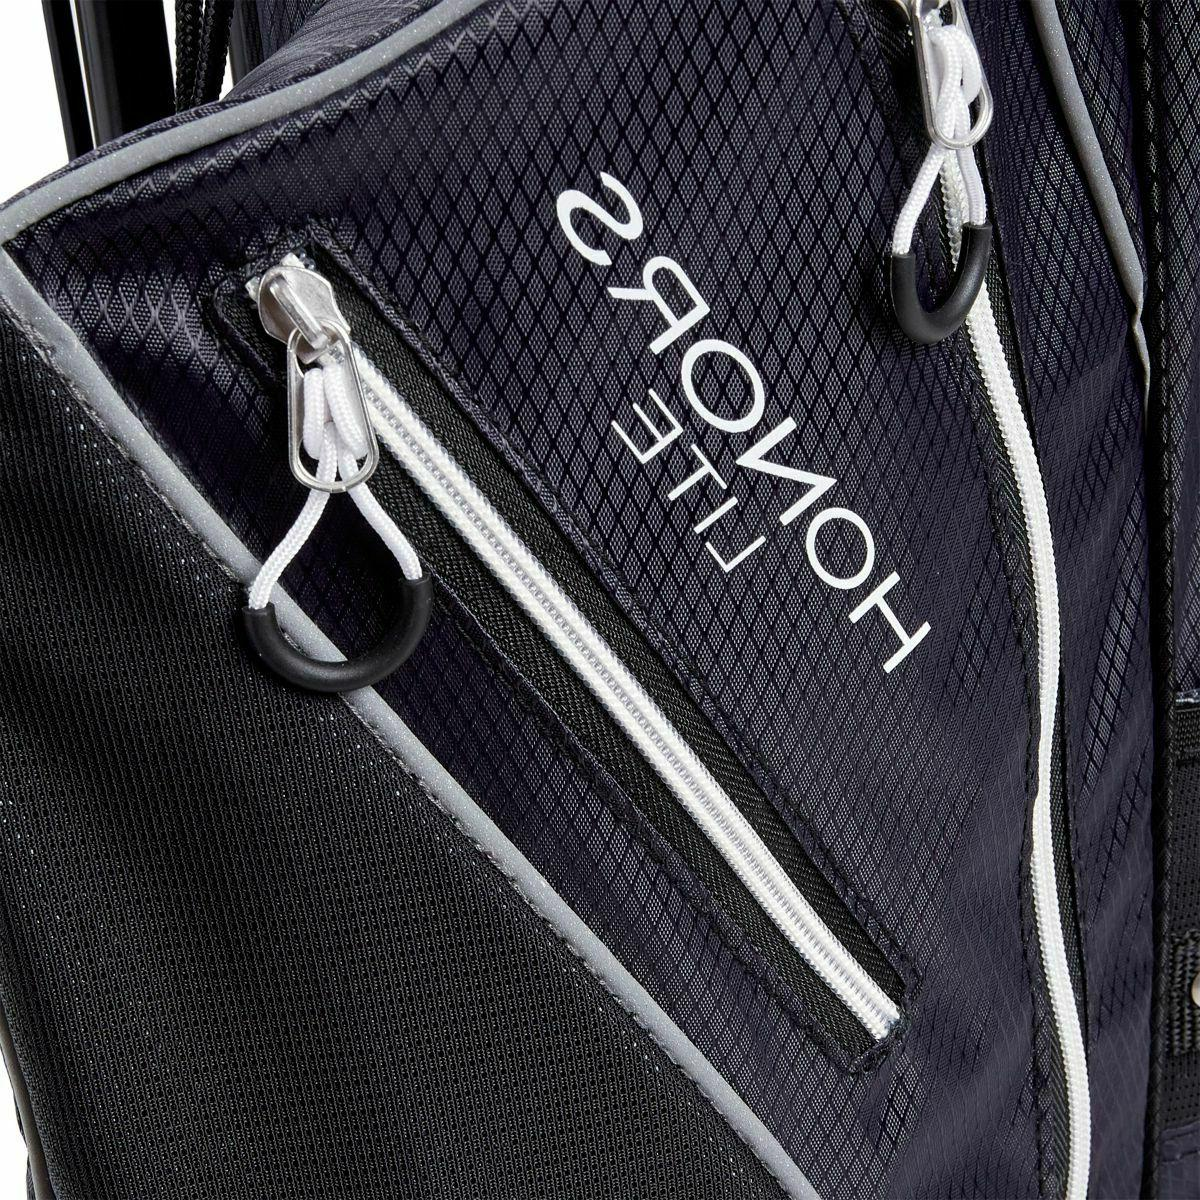 New Maxfli Golf Stand Bag 3-Way Divider Padded Black